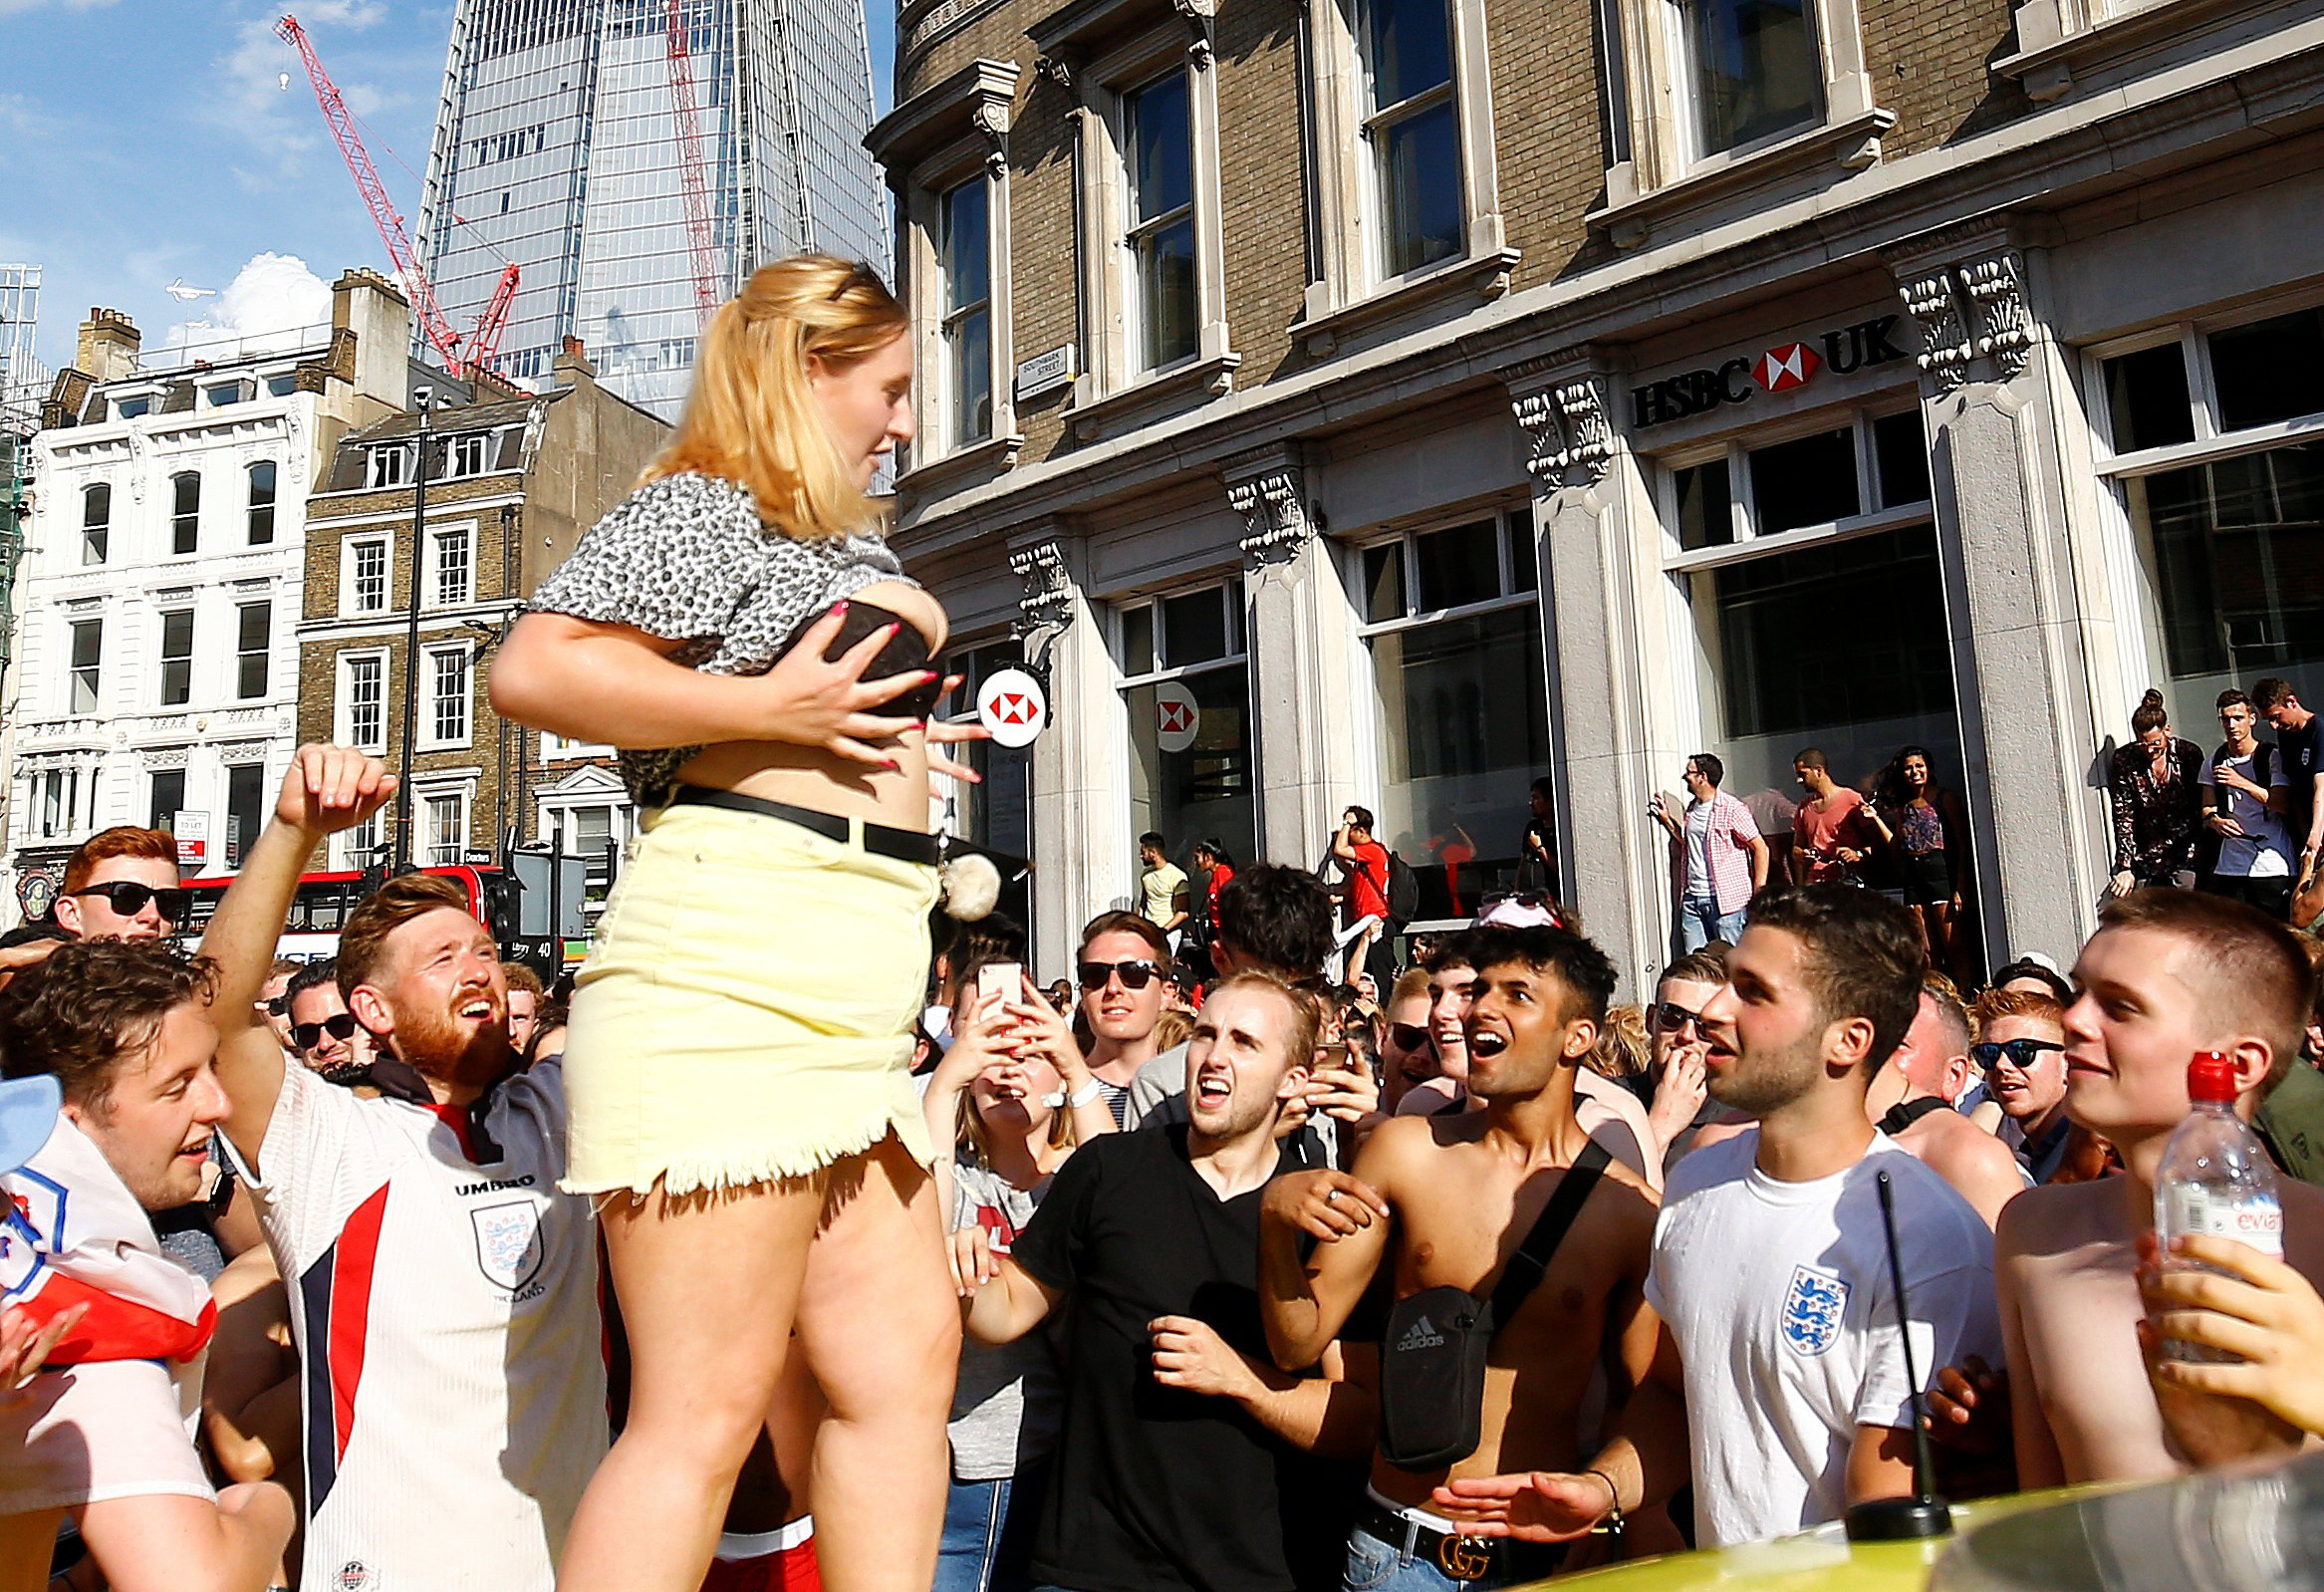 Soccer Football - World Cup - England fans watch Sweden vs England - London, Britain - July 7, 2018 England fan celebrates on top of an ambulance after the match REUTERS/Henry Nicholls